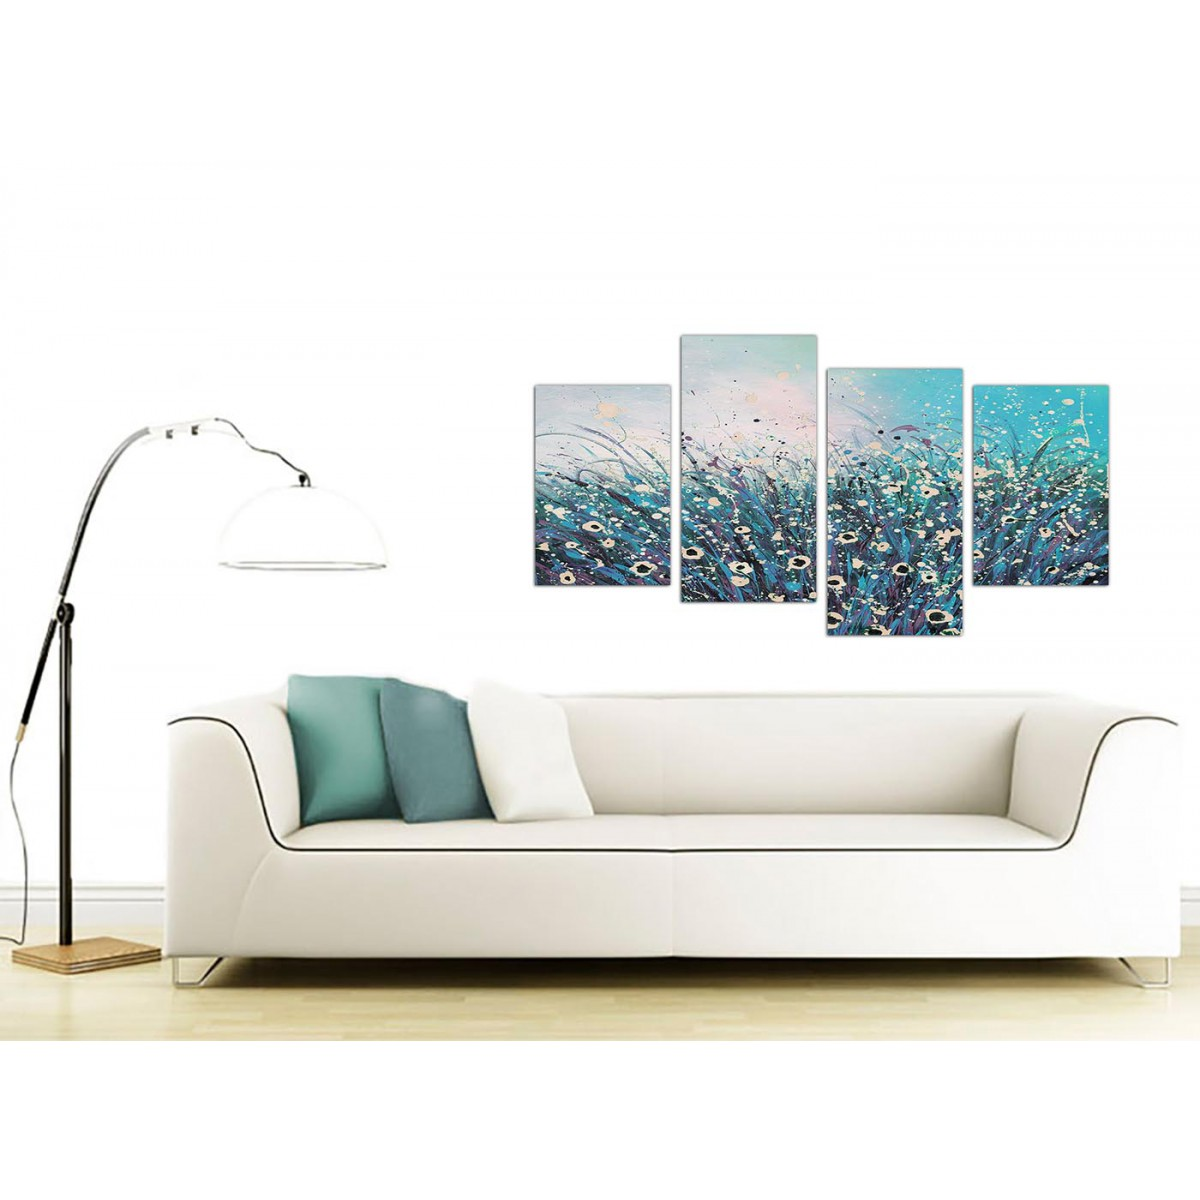 Large teal and cream abstract floral canvas multi 4 panel for Sofa bed 130cm wide